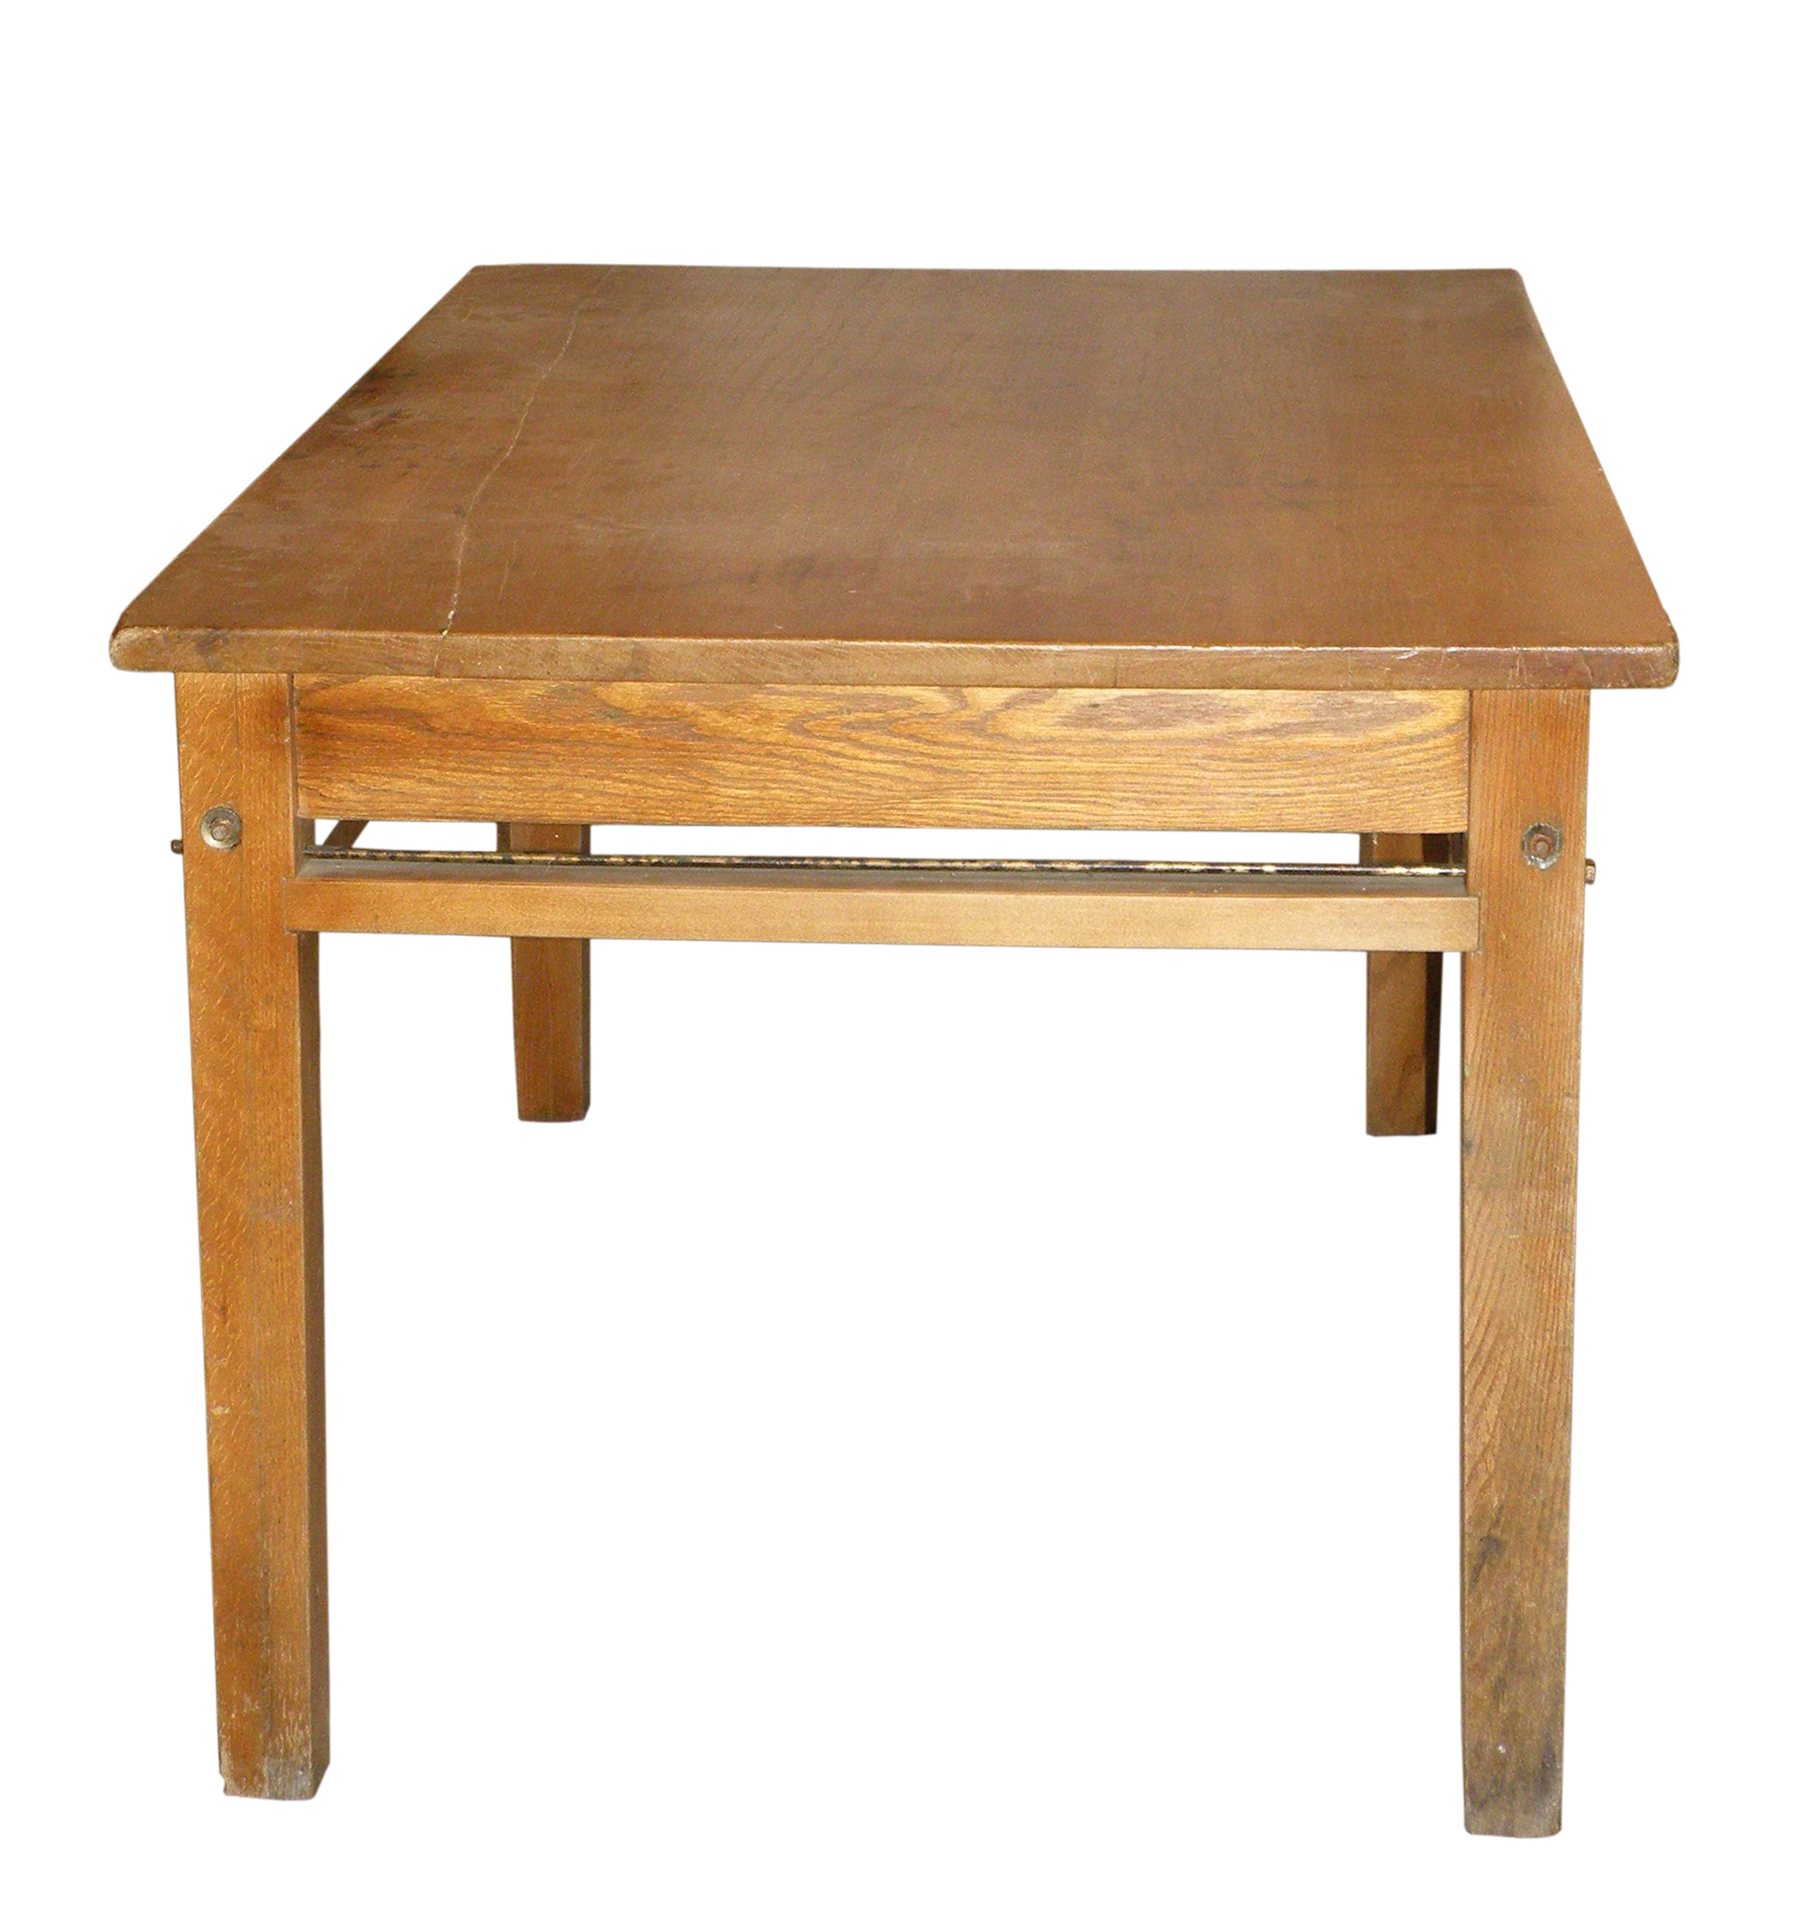 Wood table png. Image free download tables